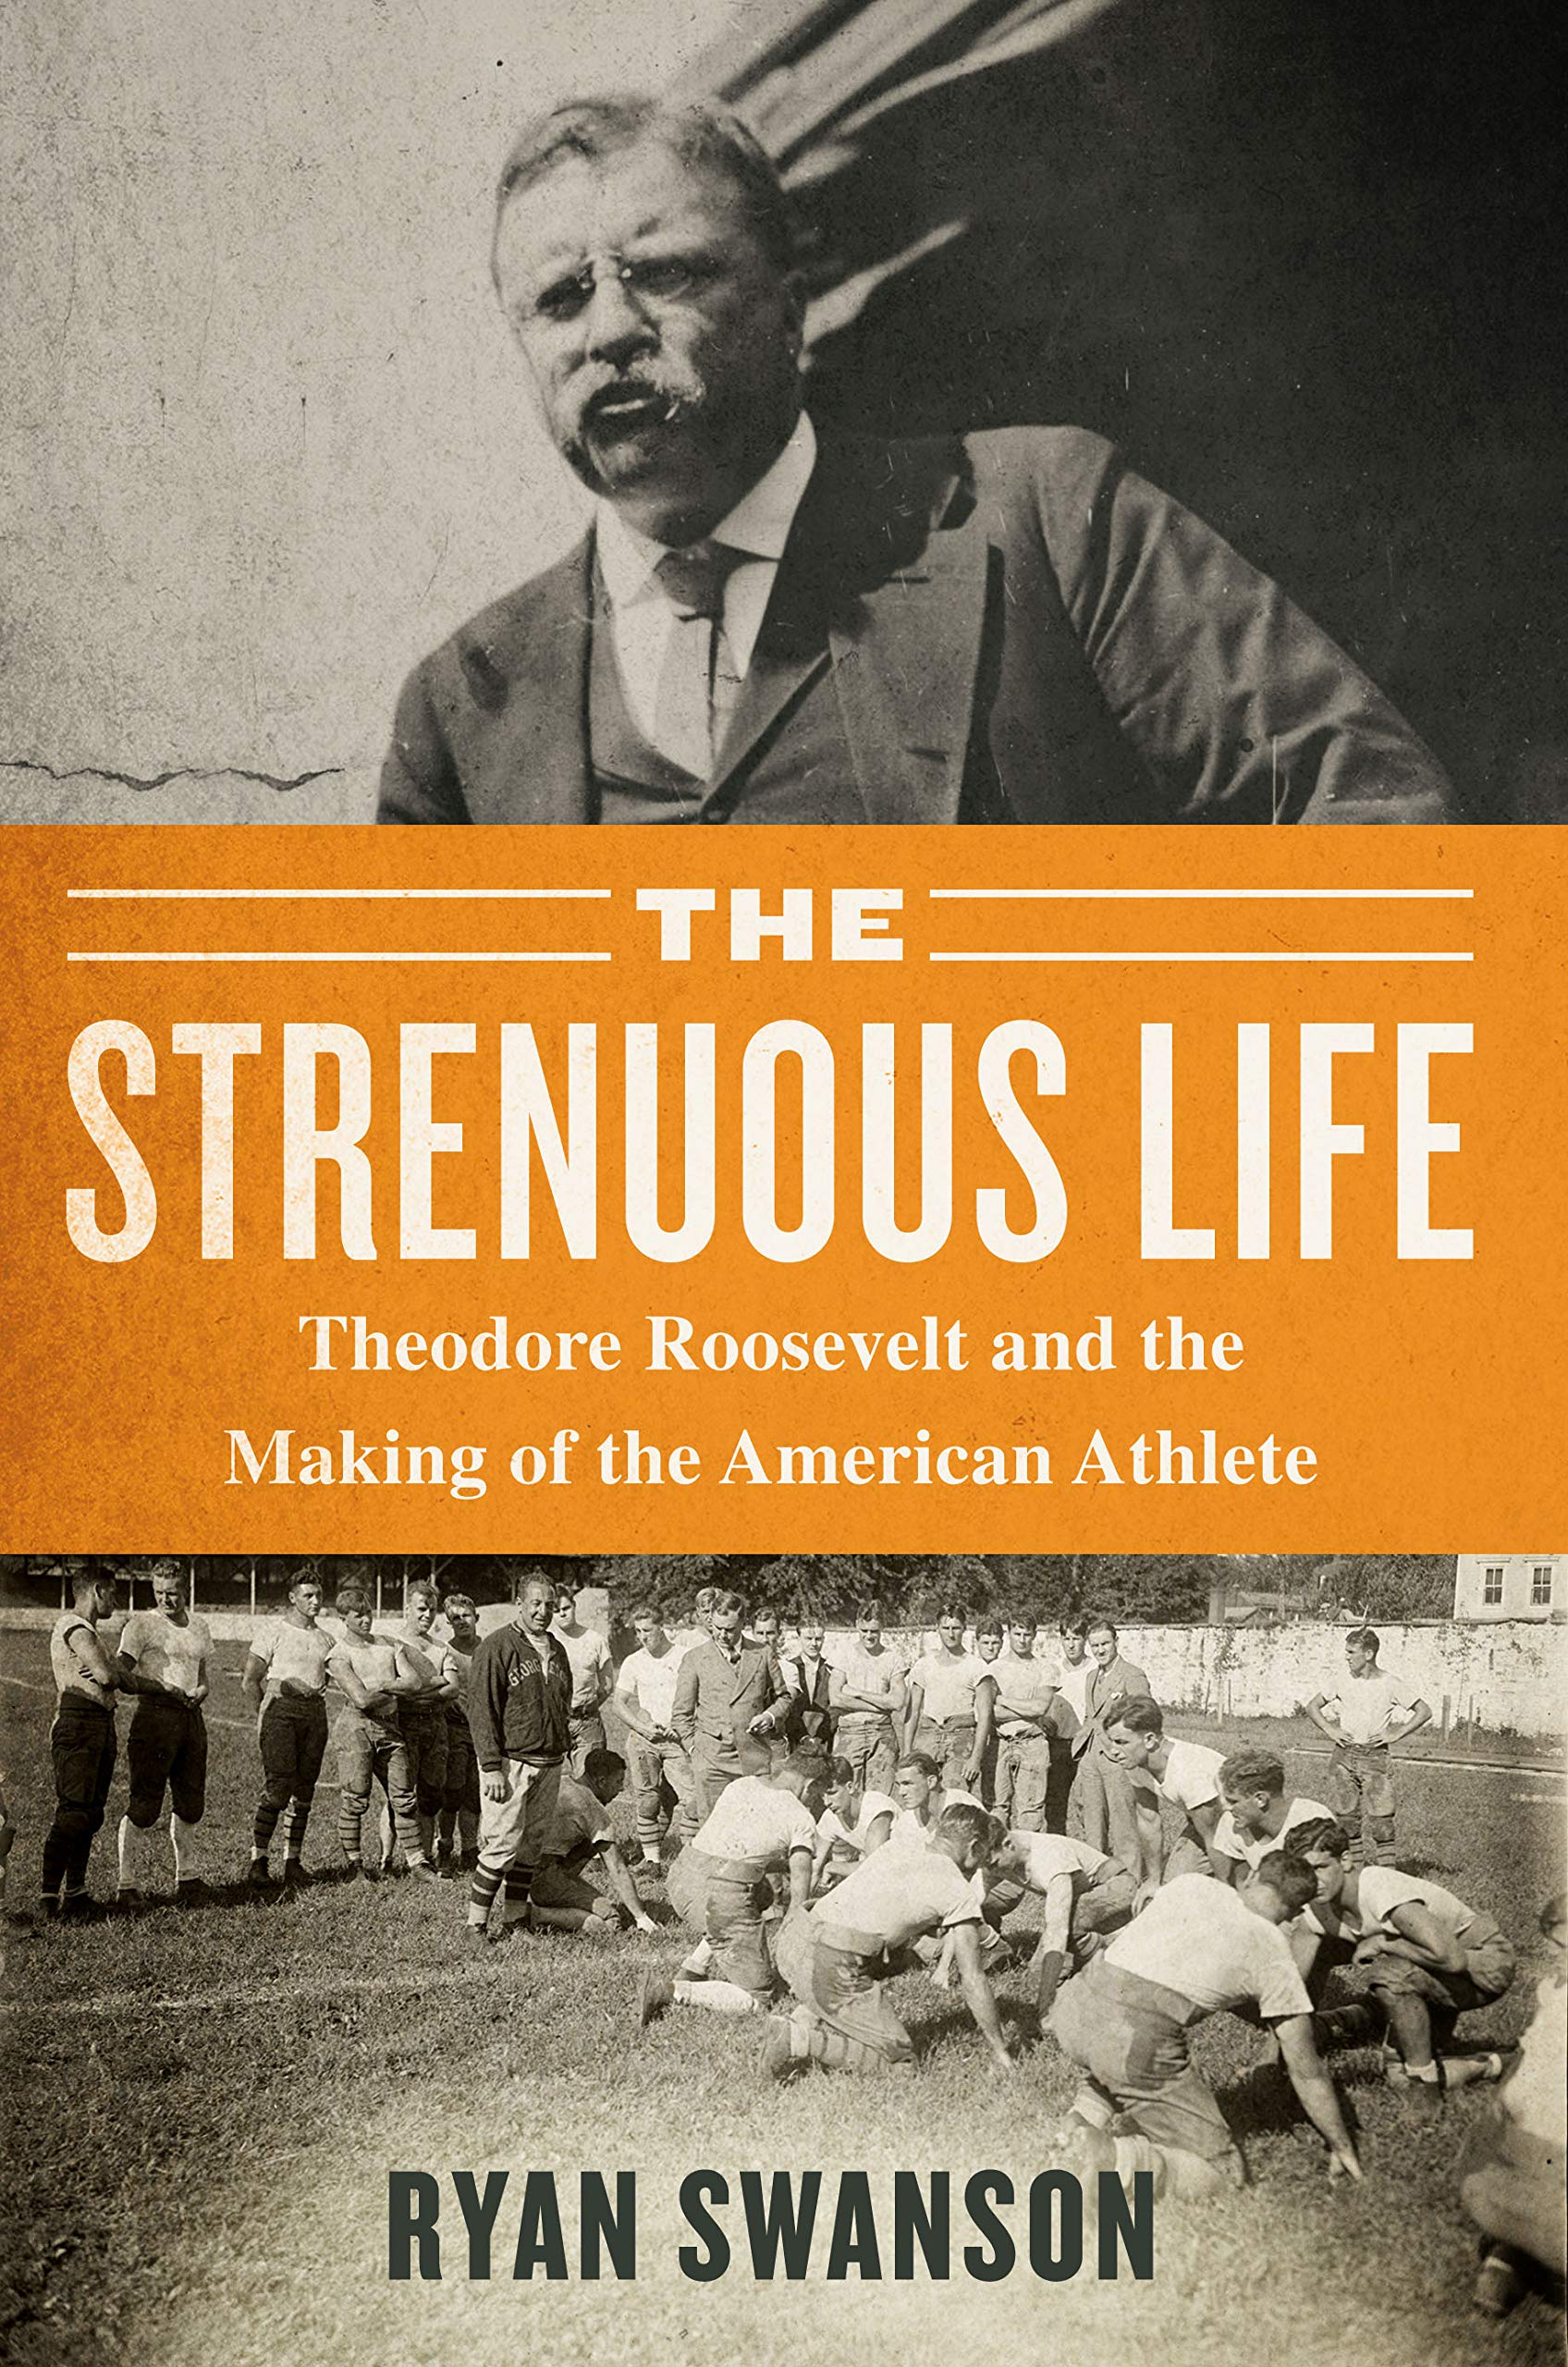 Strenuous life Theodore Roosevelt book cover Ryan Swanson.